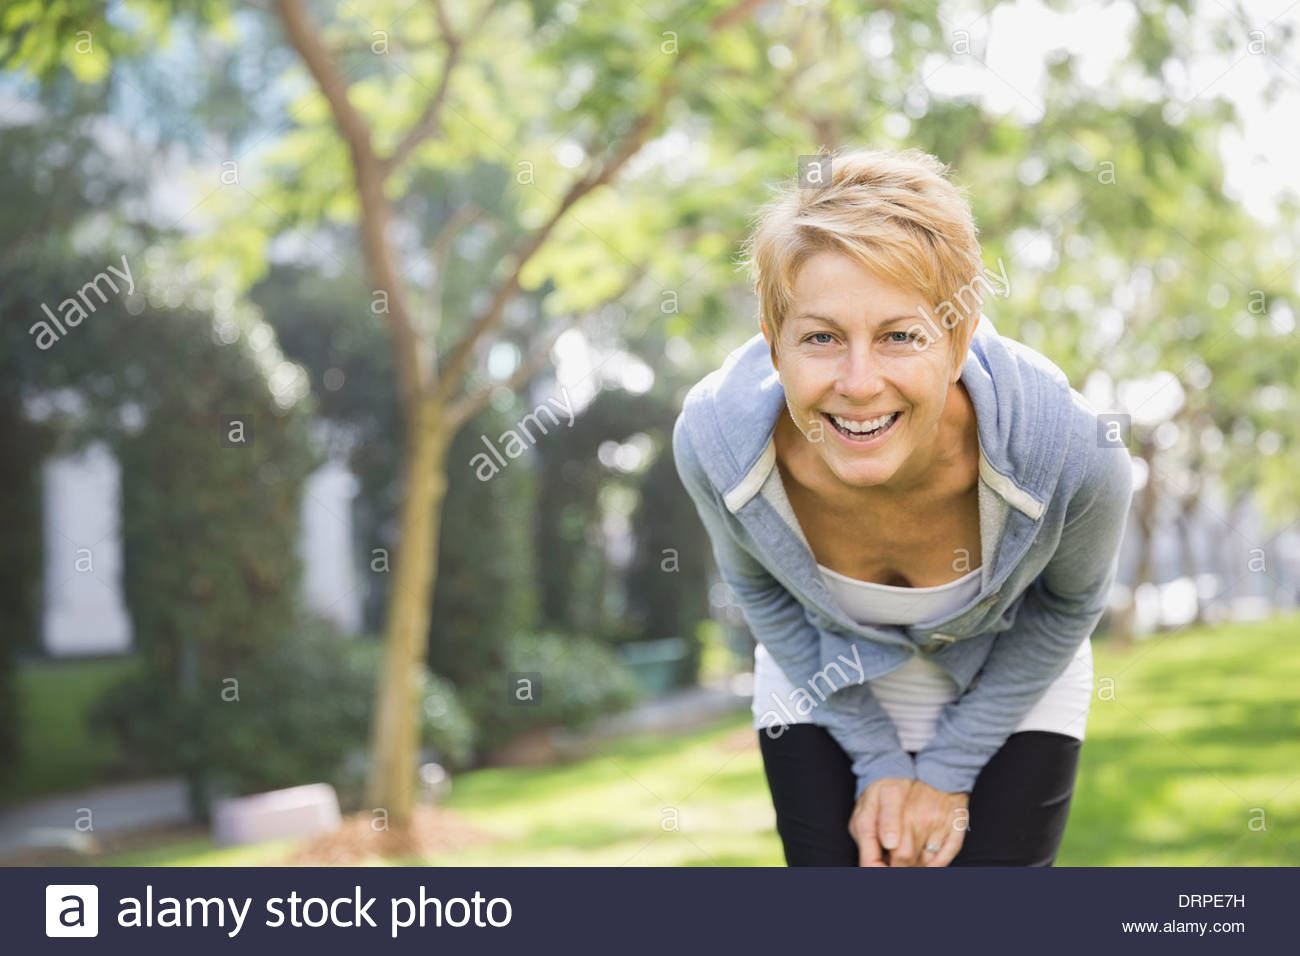 Portrait of cheerful woman in park - Stock Image